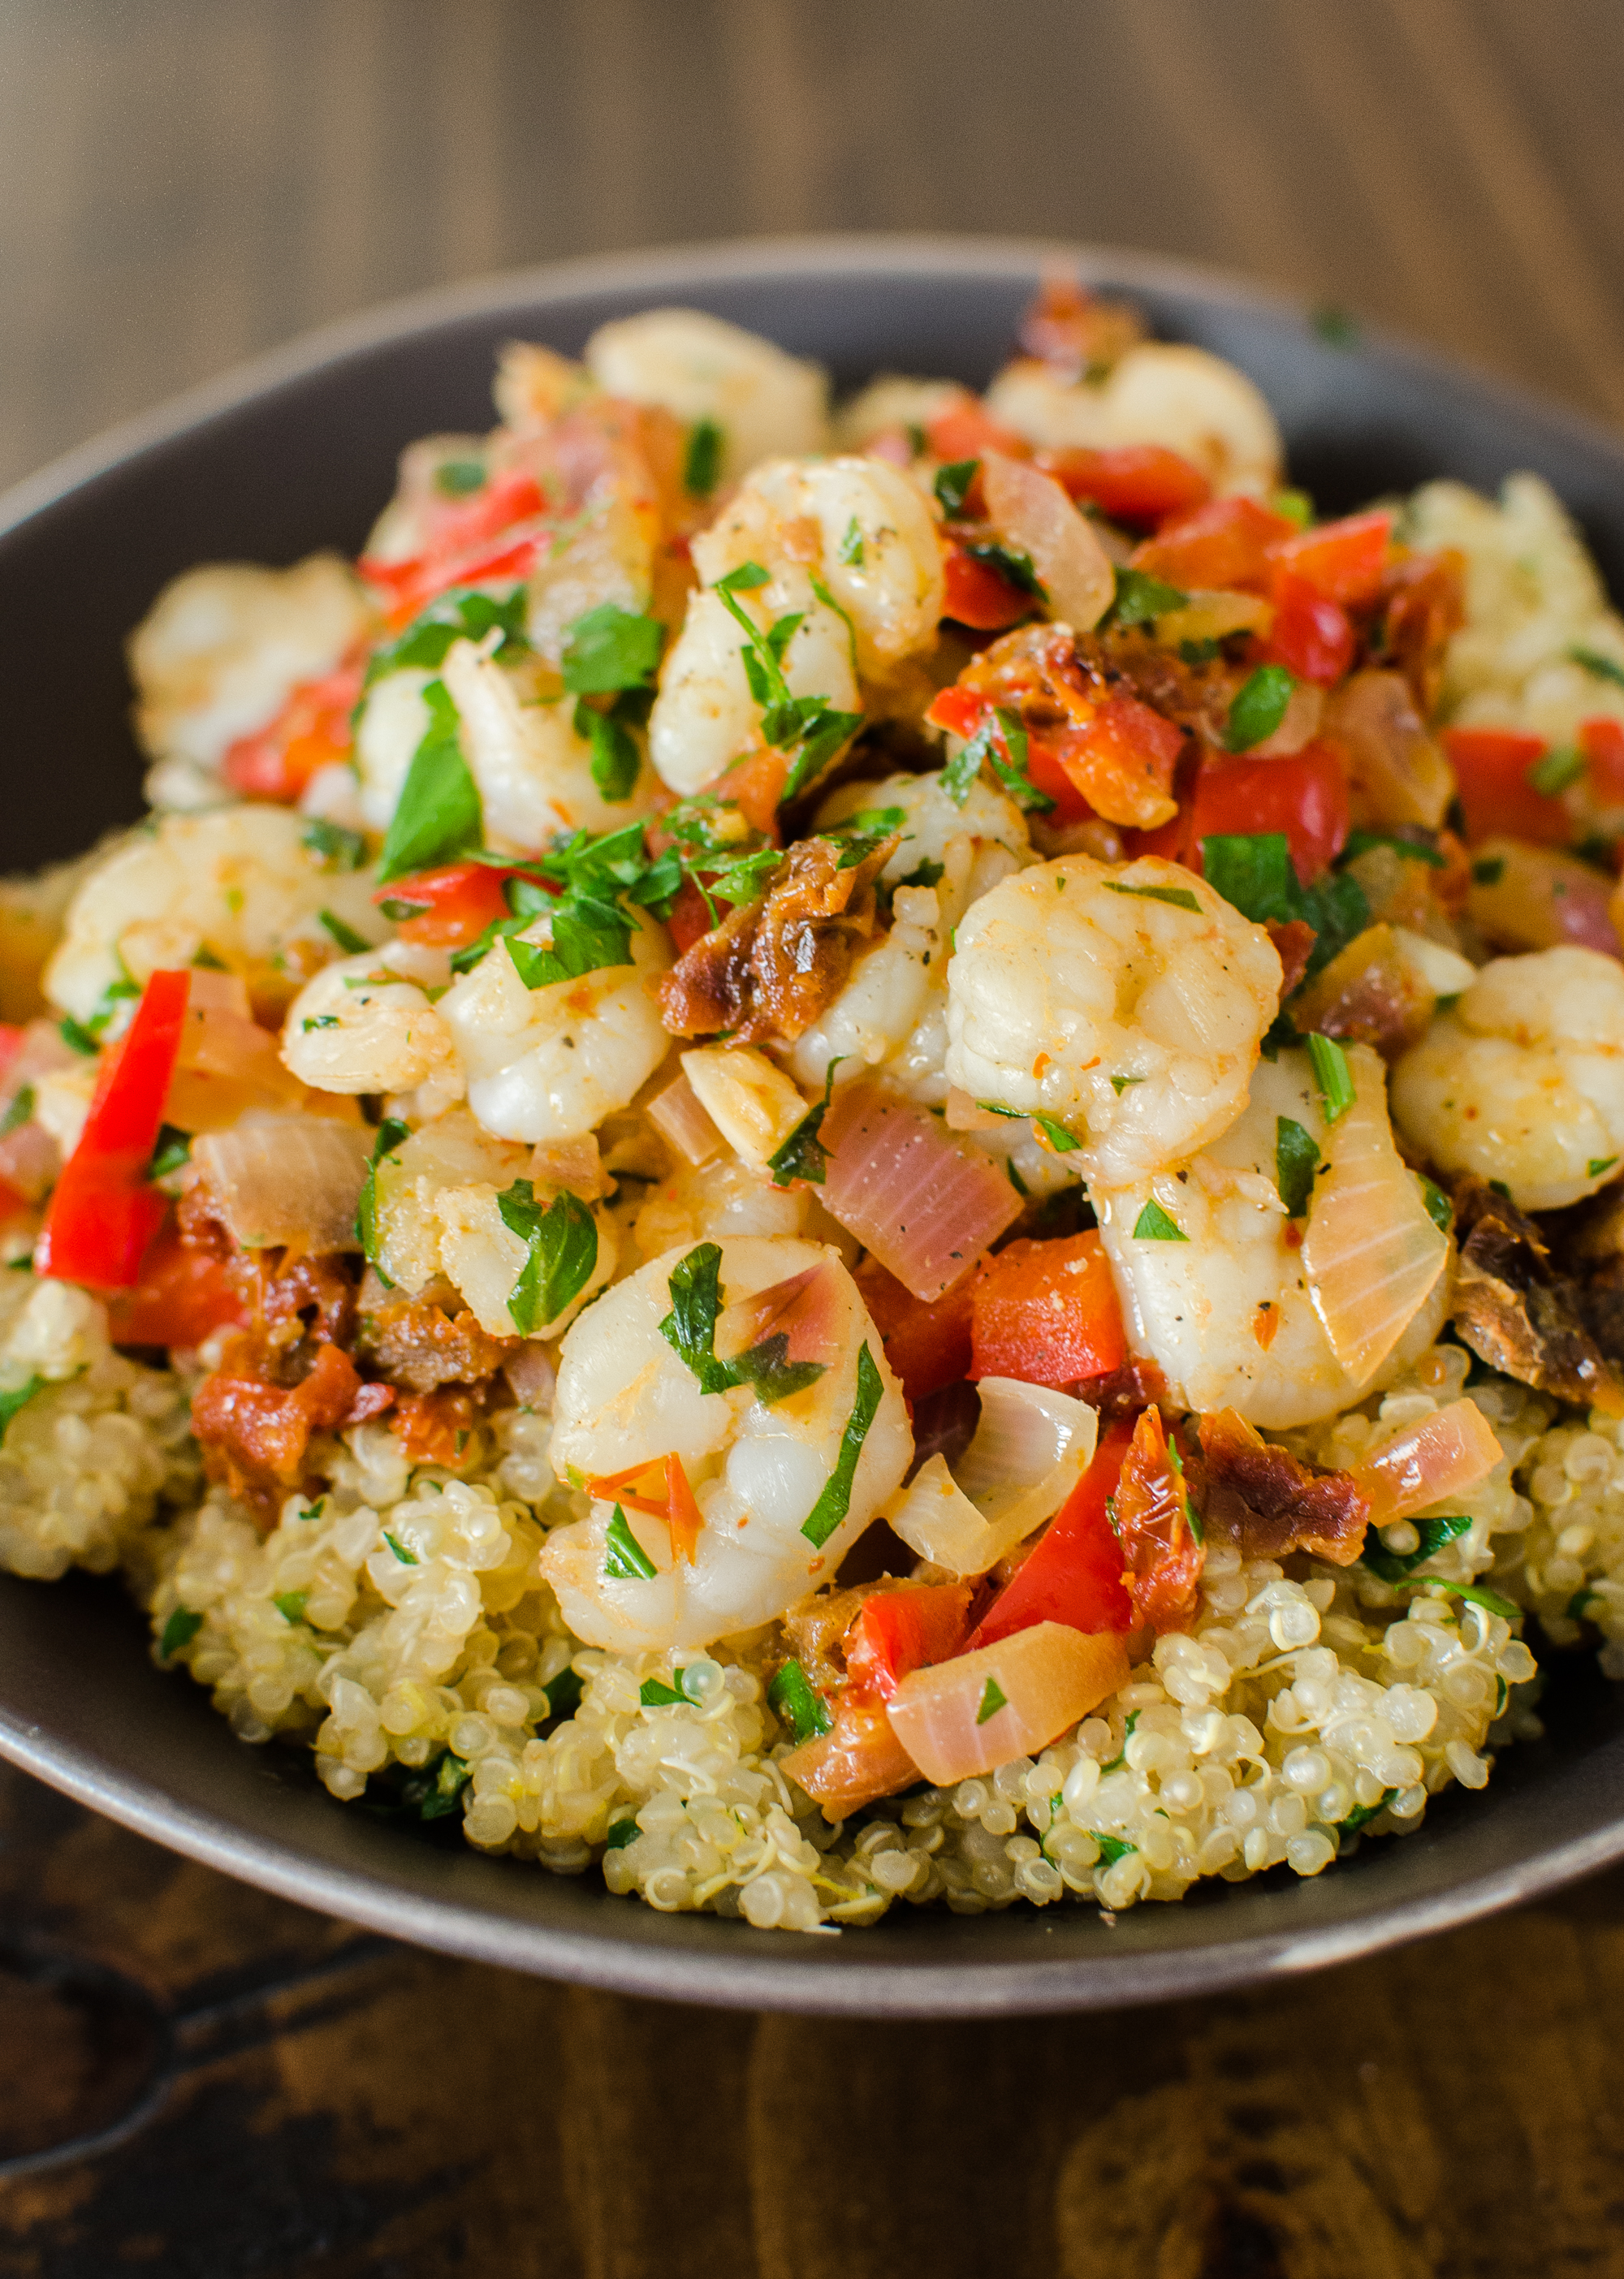 Quick Dinner Recipe: Saucy Sautéed Shrimp over Lemon Quinoa | Kitchn